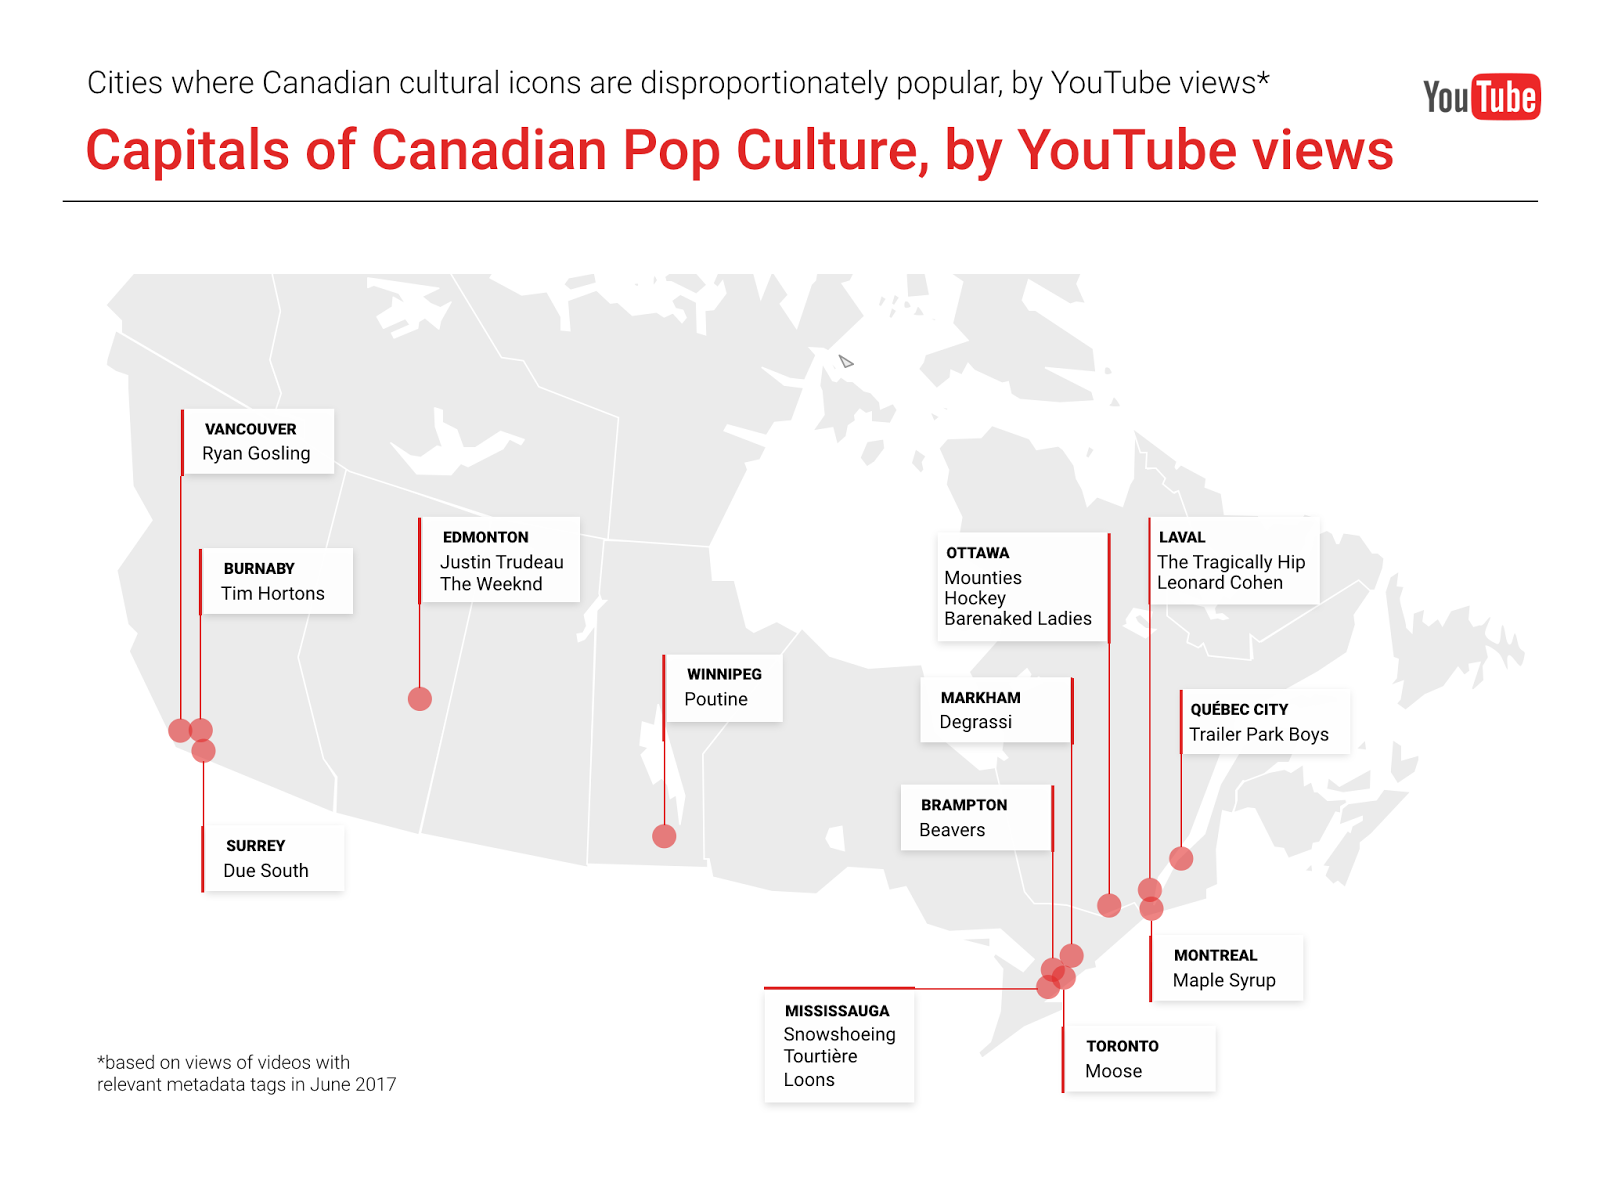 medium resolution of does ottawa dominate when it comes to watching videos about snowshoeing which canadian city is most interested in poutine we ve crunched the numbers for